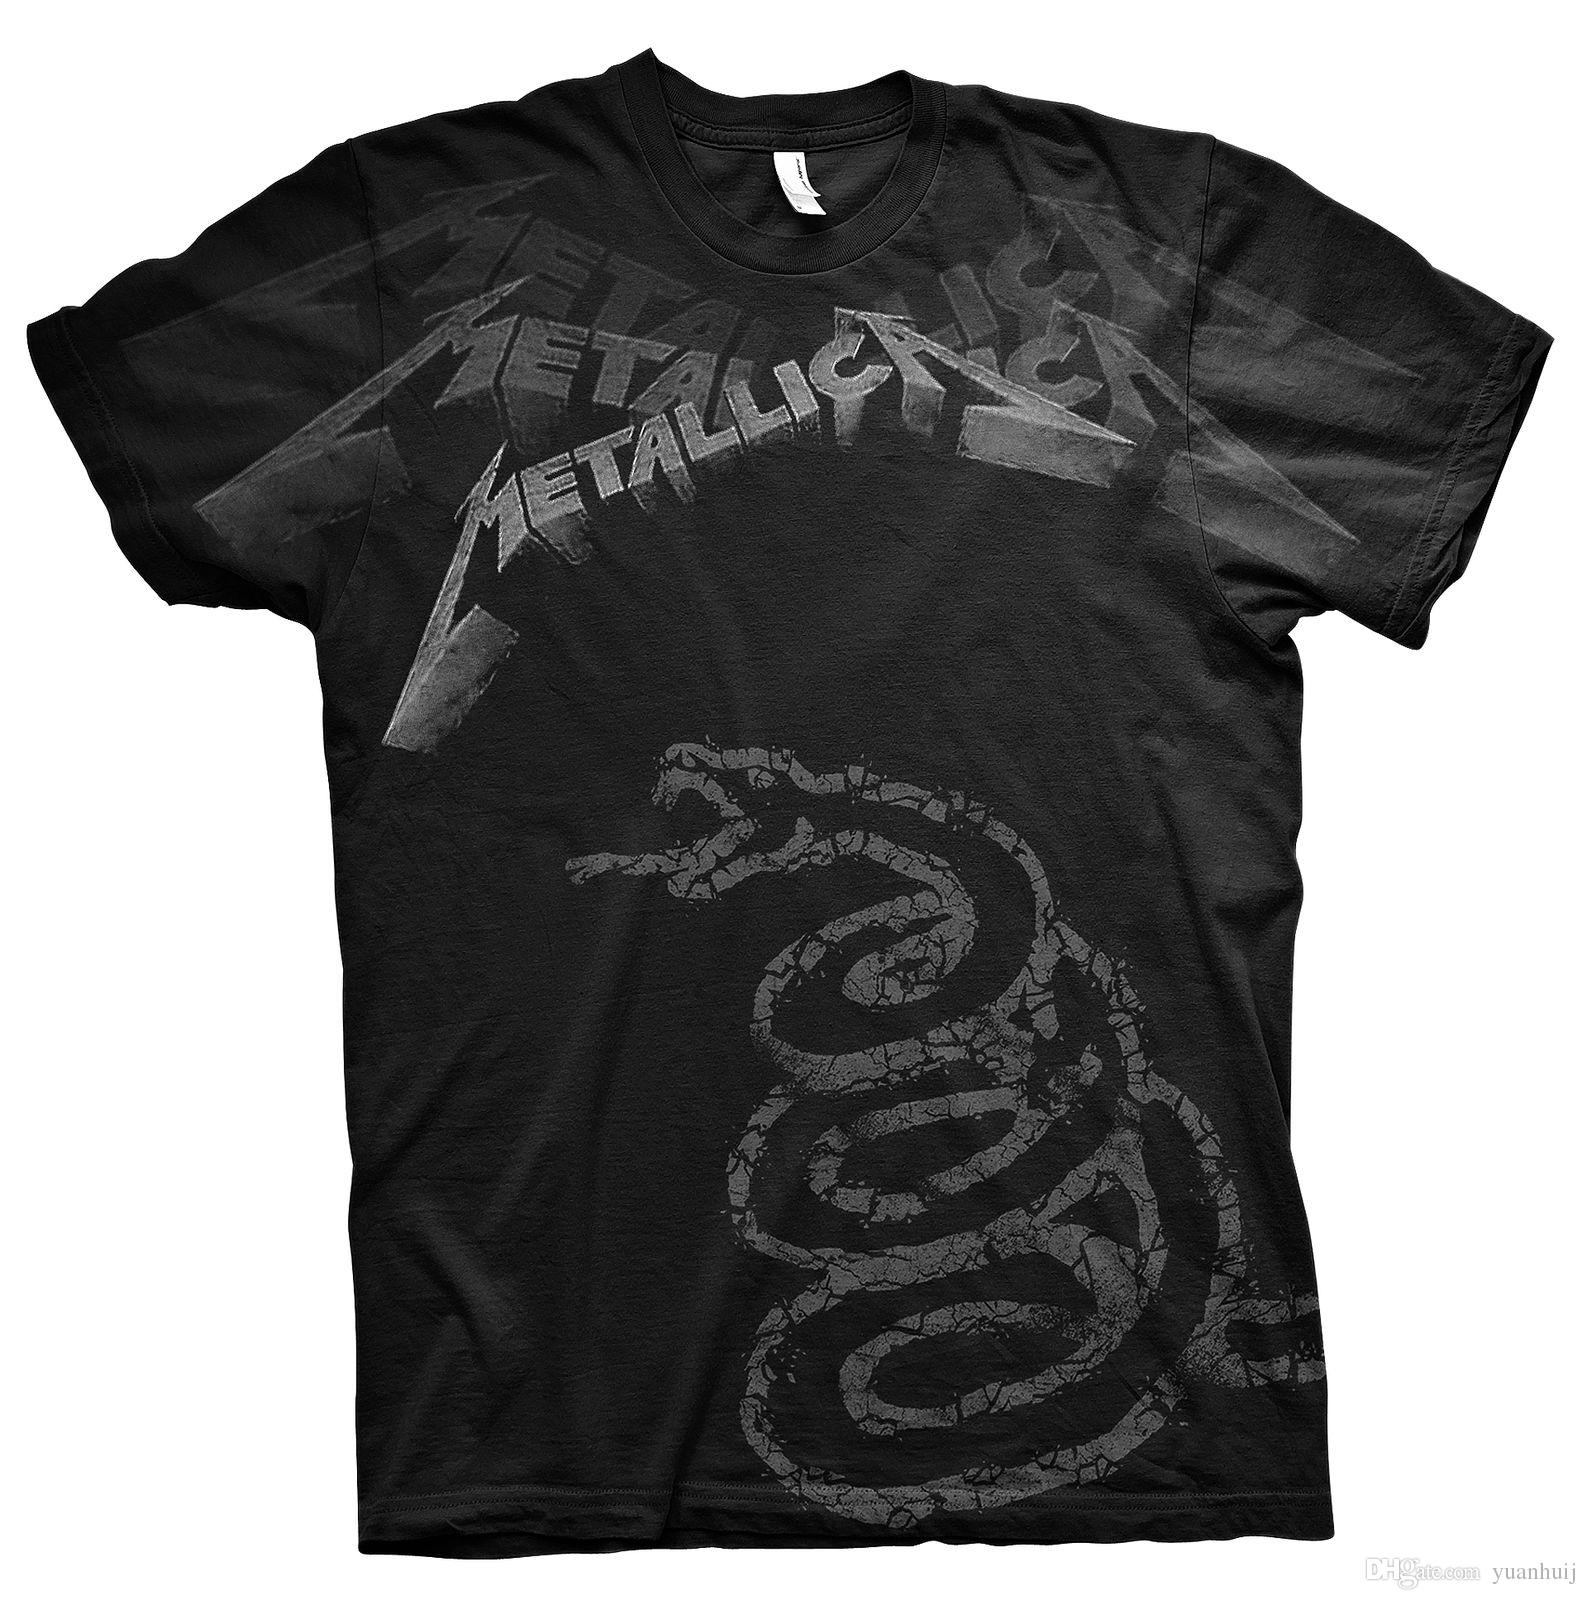 e024ef6cc04 Top Tee Black Album James Hetfield Rock T Shirt Officiel Hommes Best T  Shirt Online Buy Funky T Shirts Online From Yuanhuij